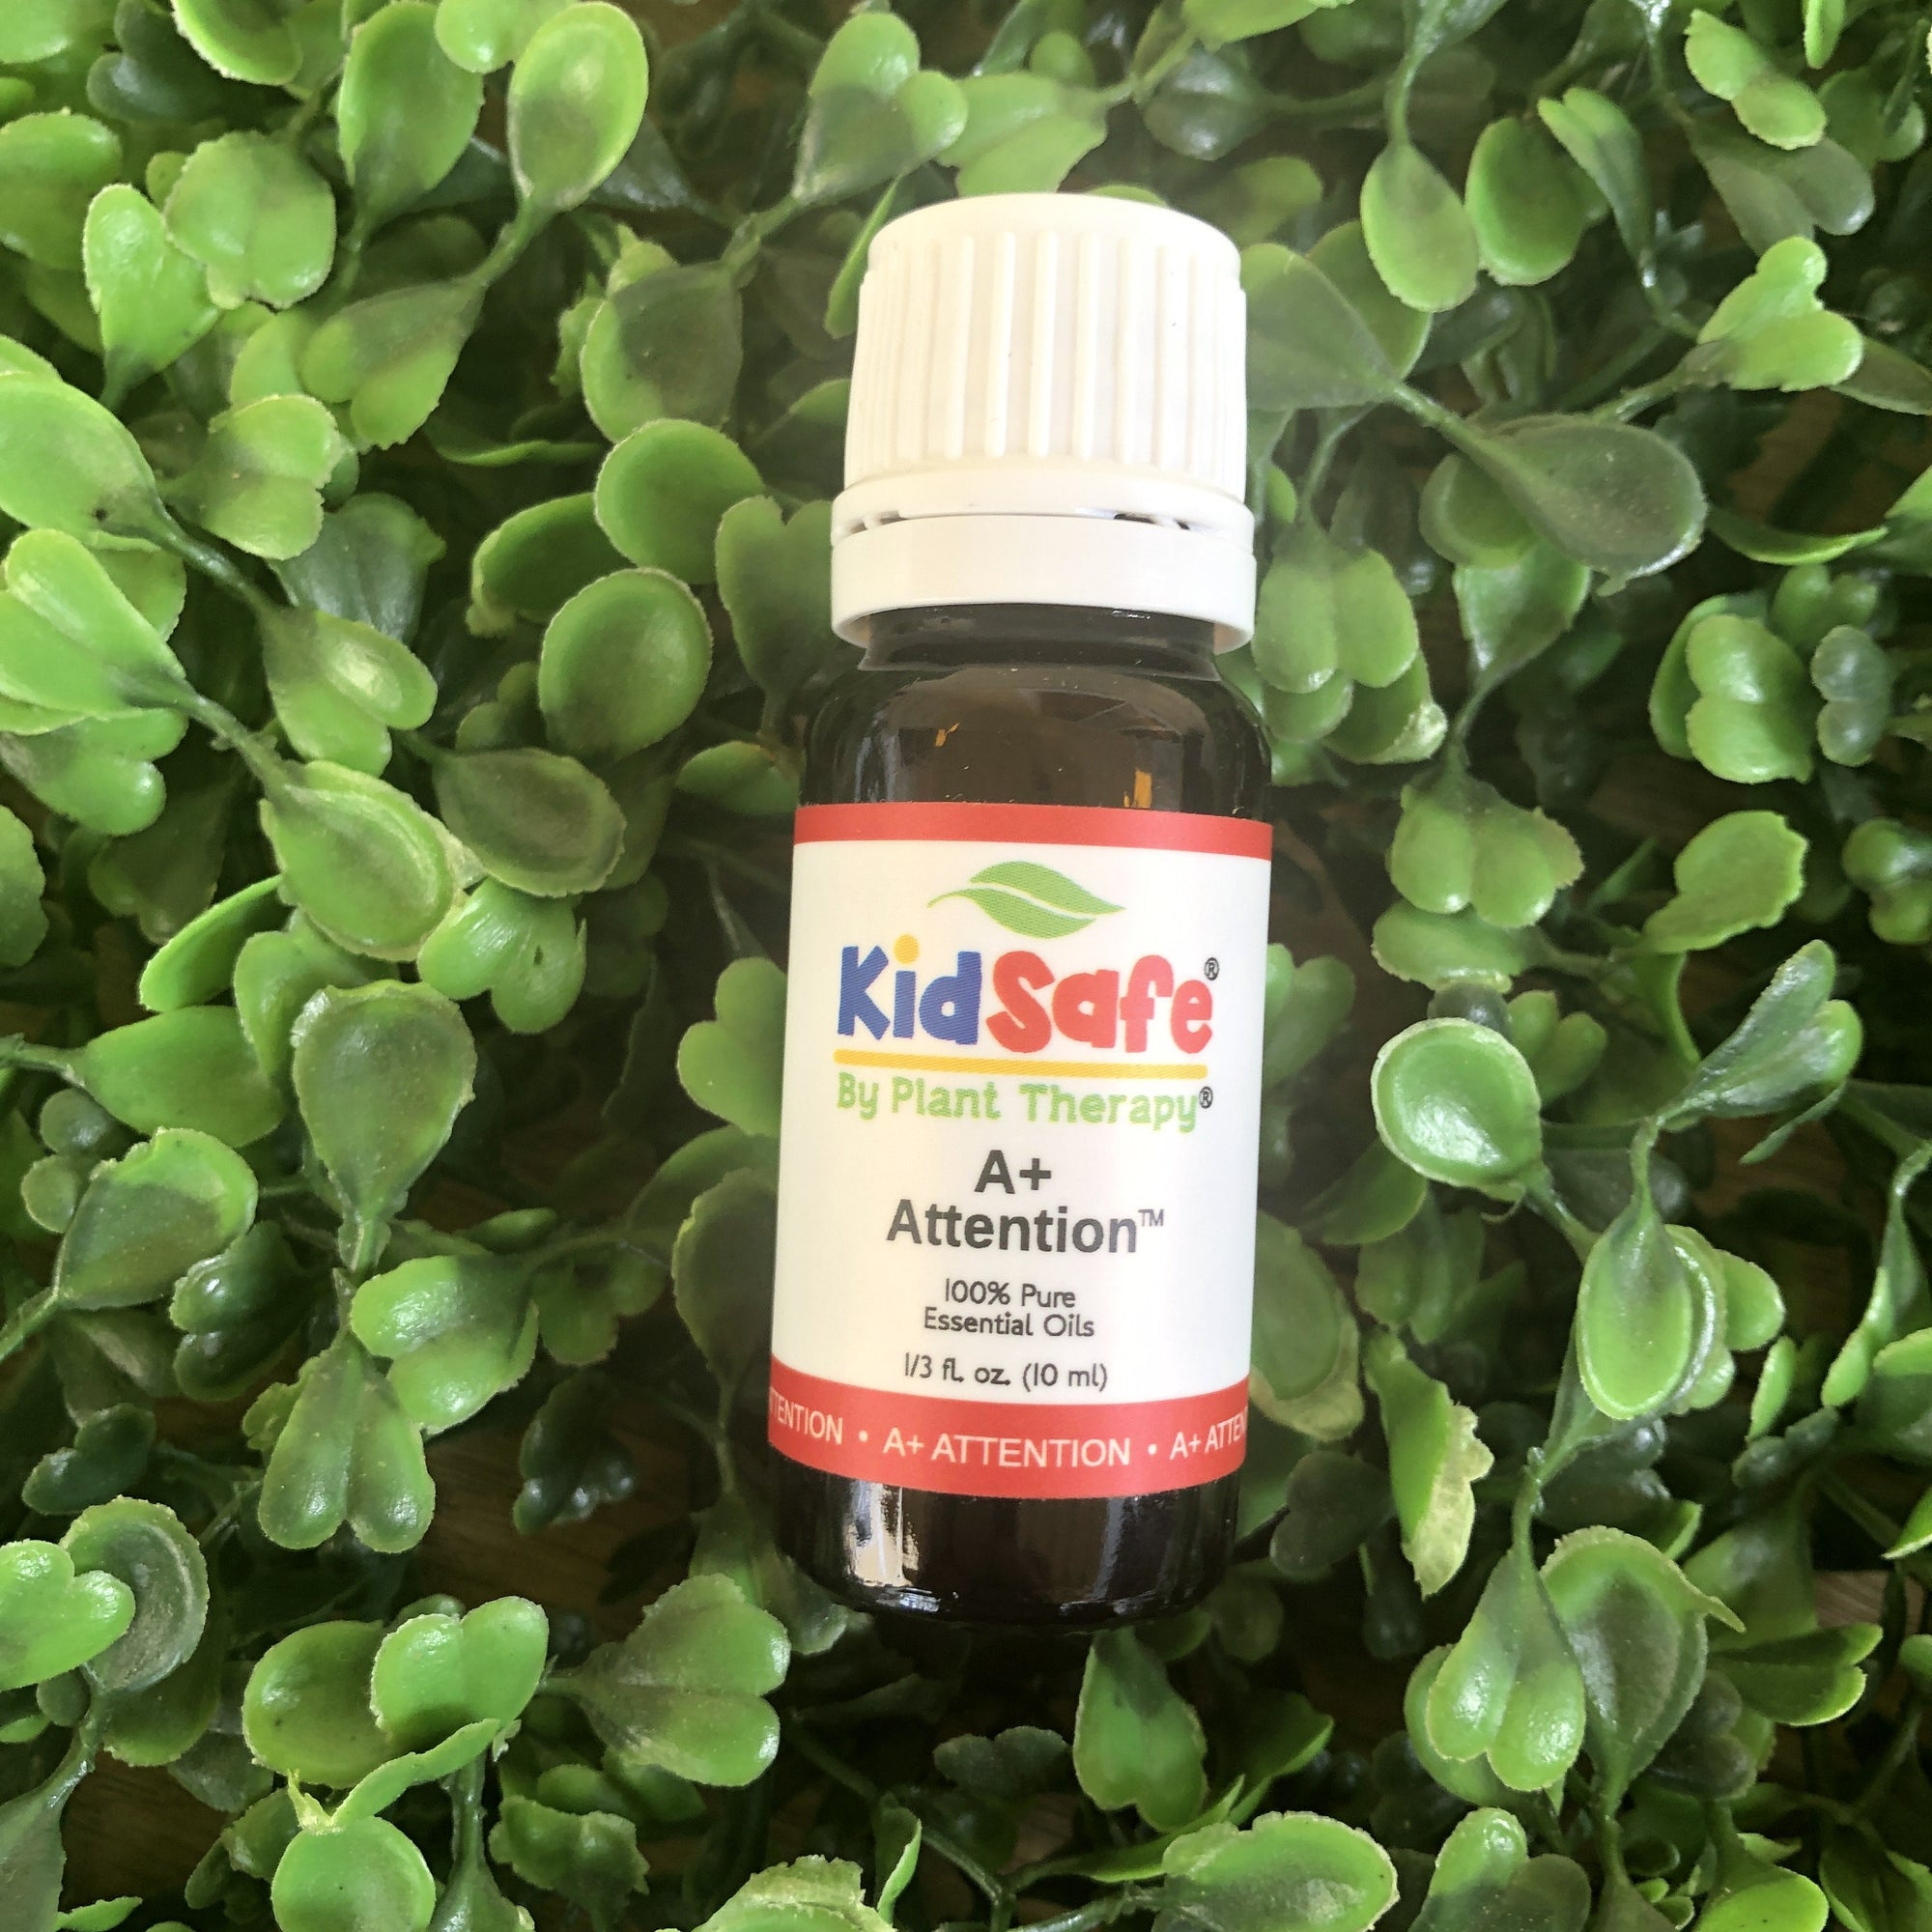 A+ Attention KidSafe Essential Oil